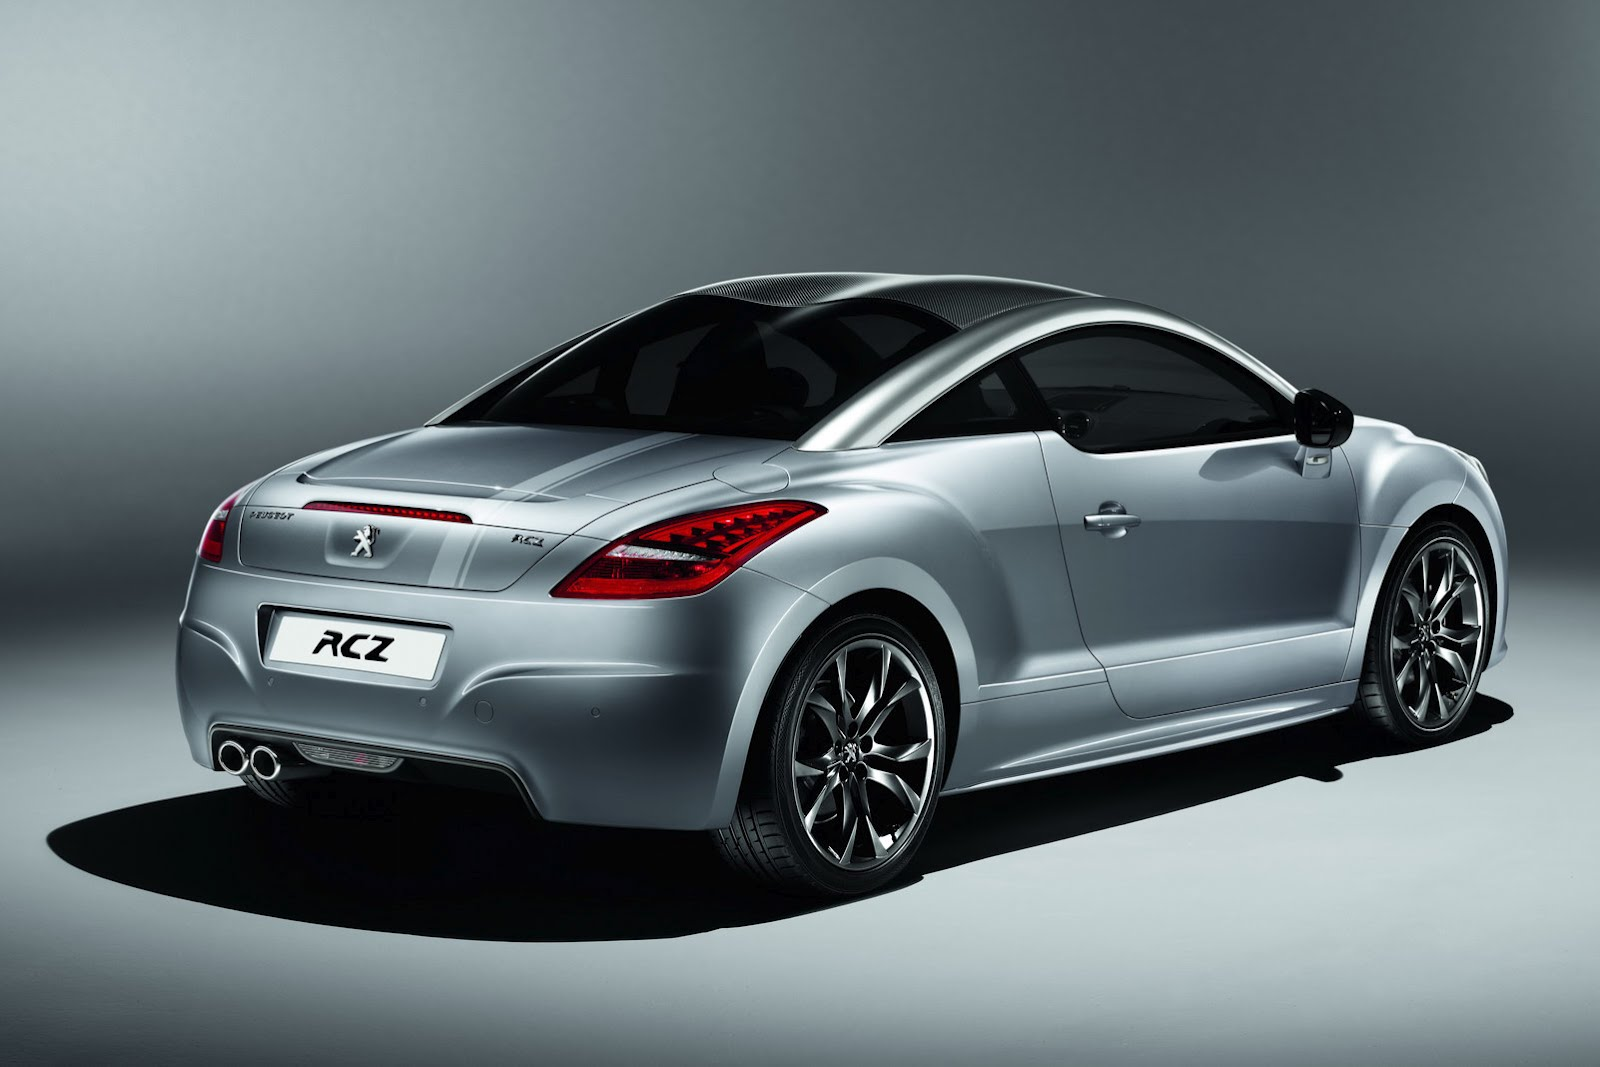 peugeot launches special edition rcz onyx autoevolution. Black Bedroom Furniture Sets. Home Design Ideas